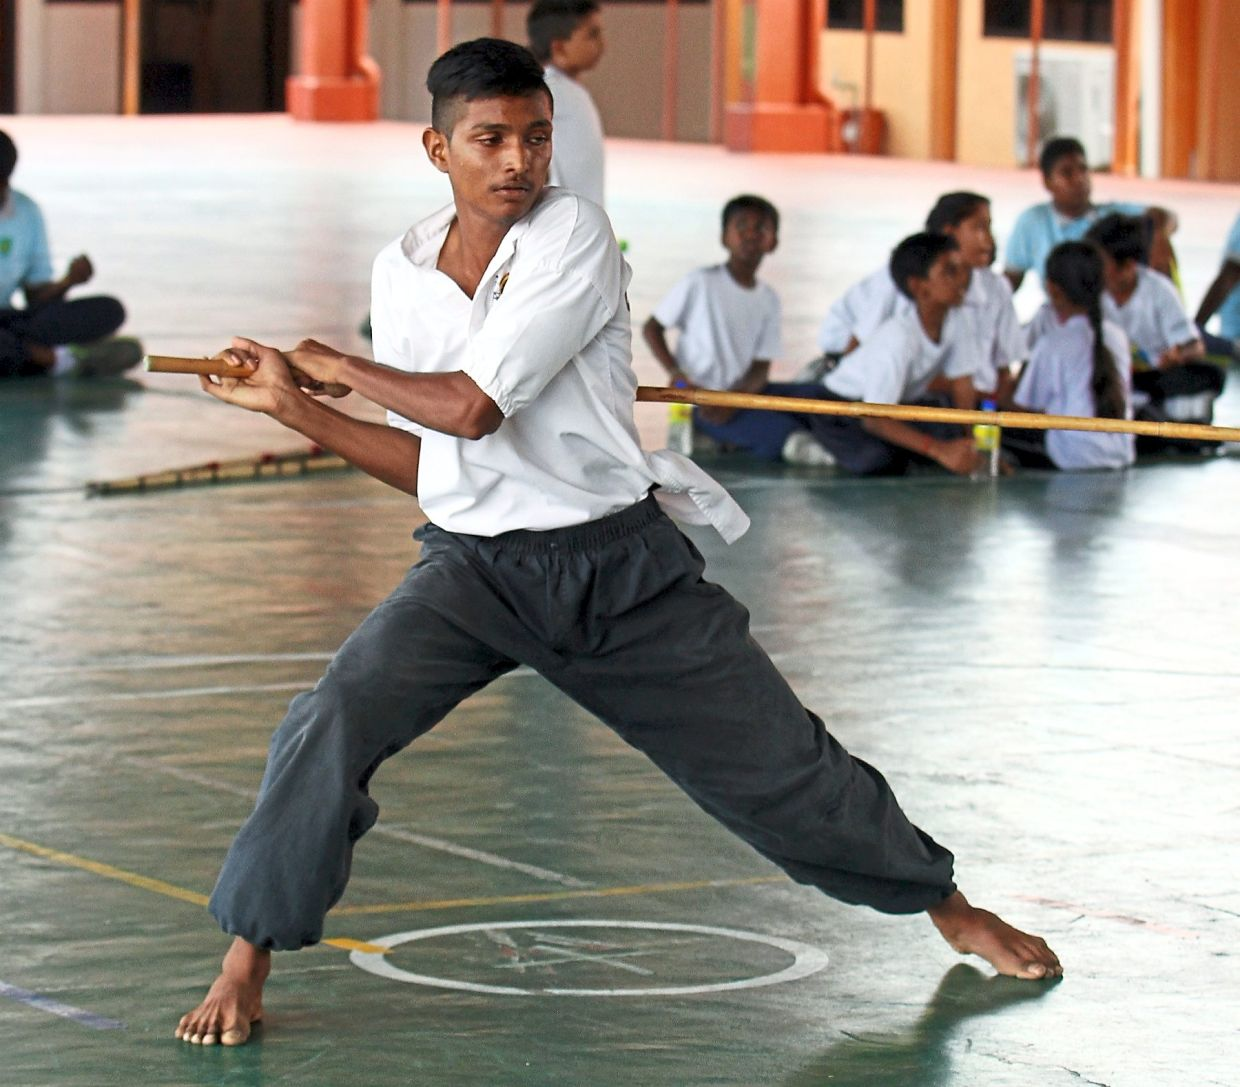 Silambam is a weapon-based Indian martial art originating in South India. - Filepic